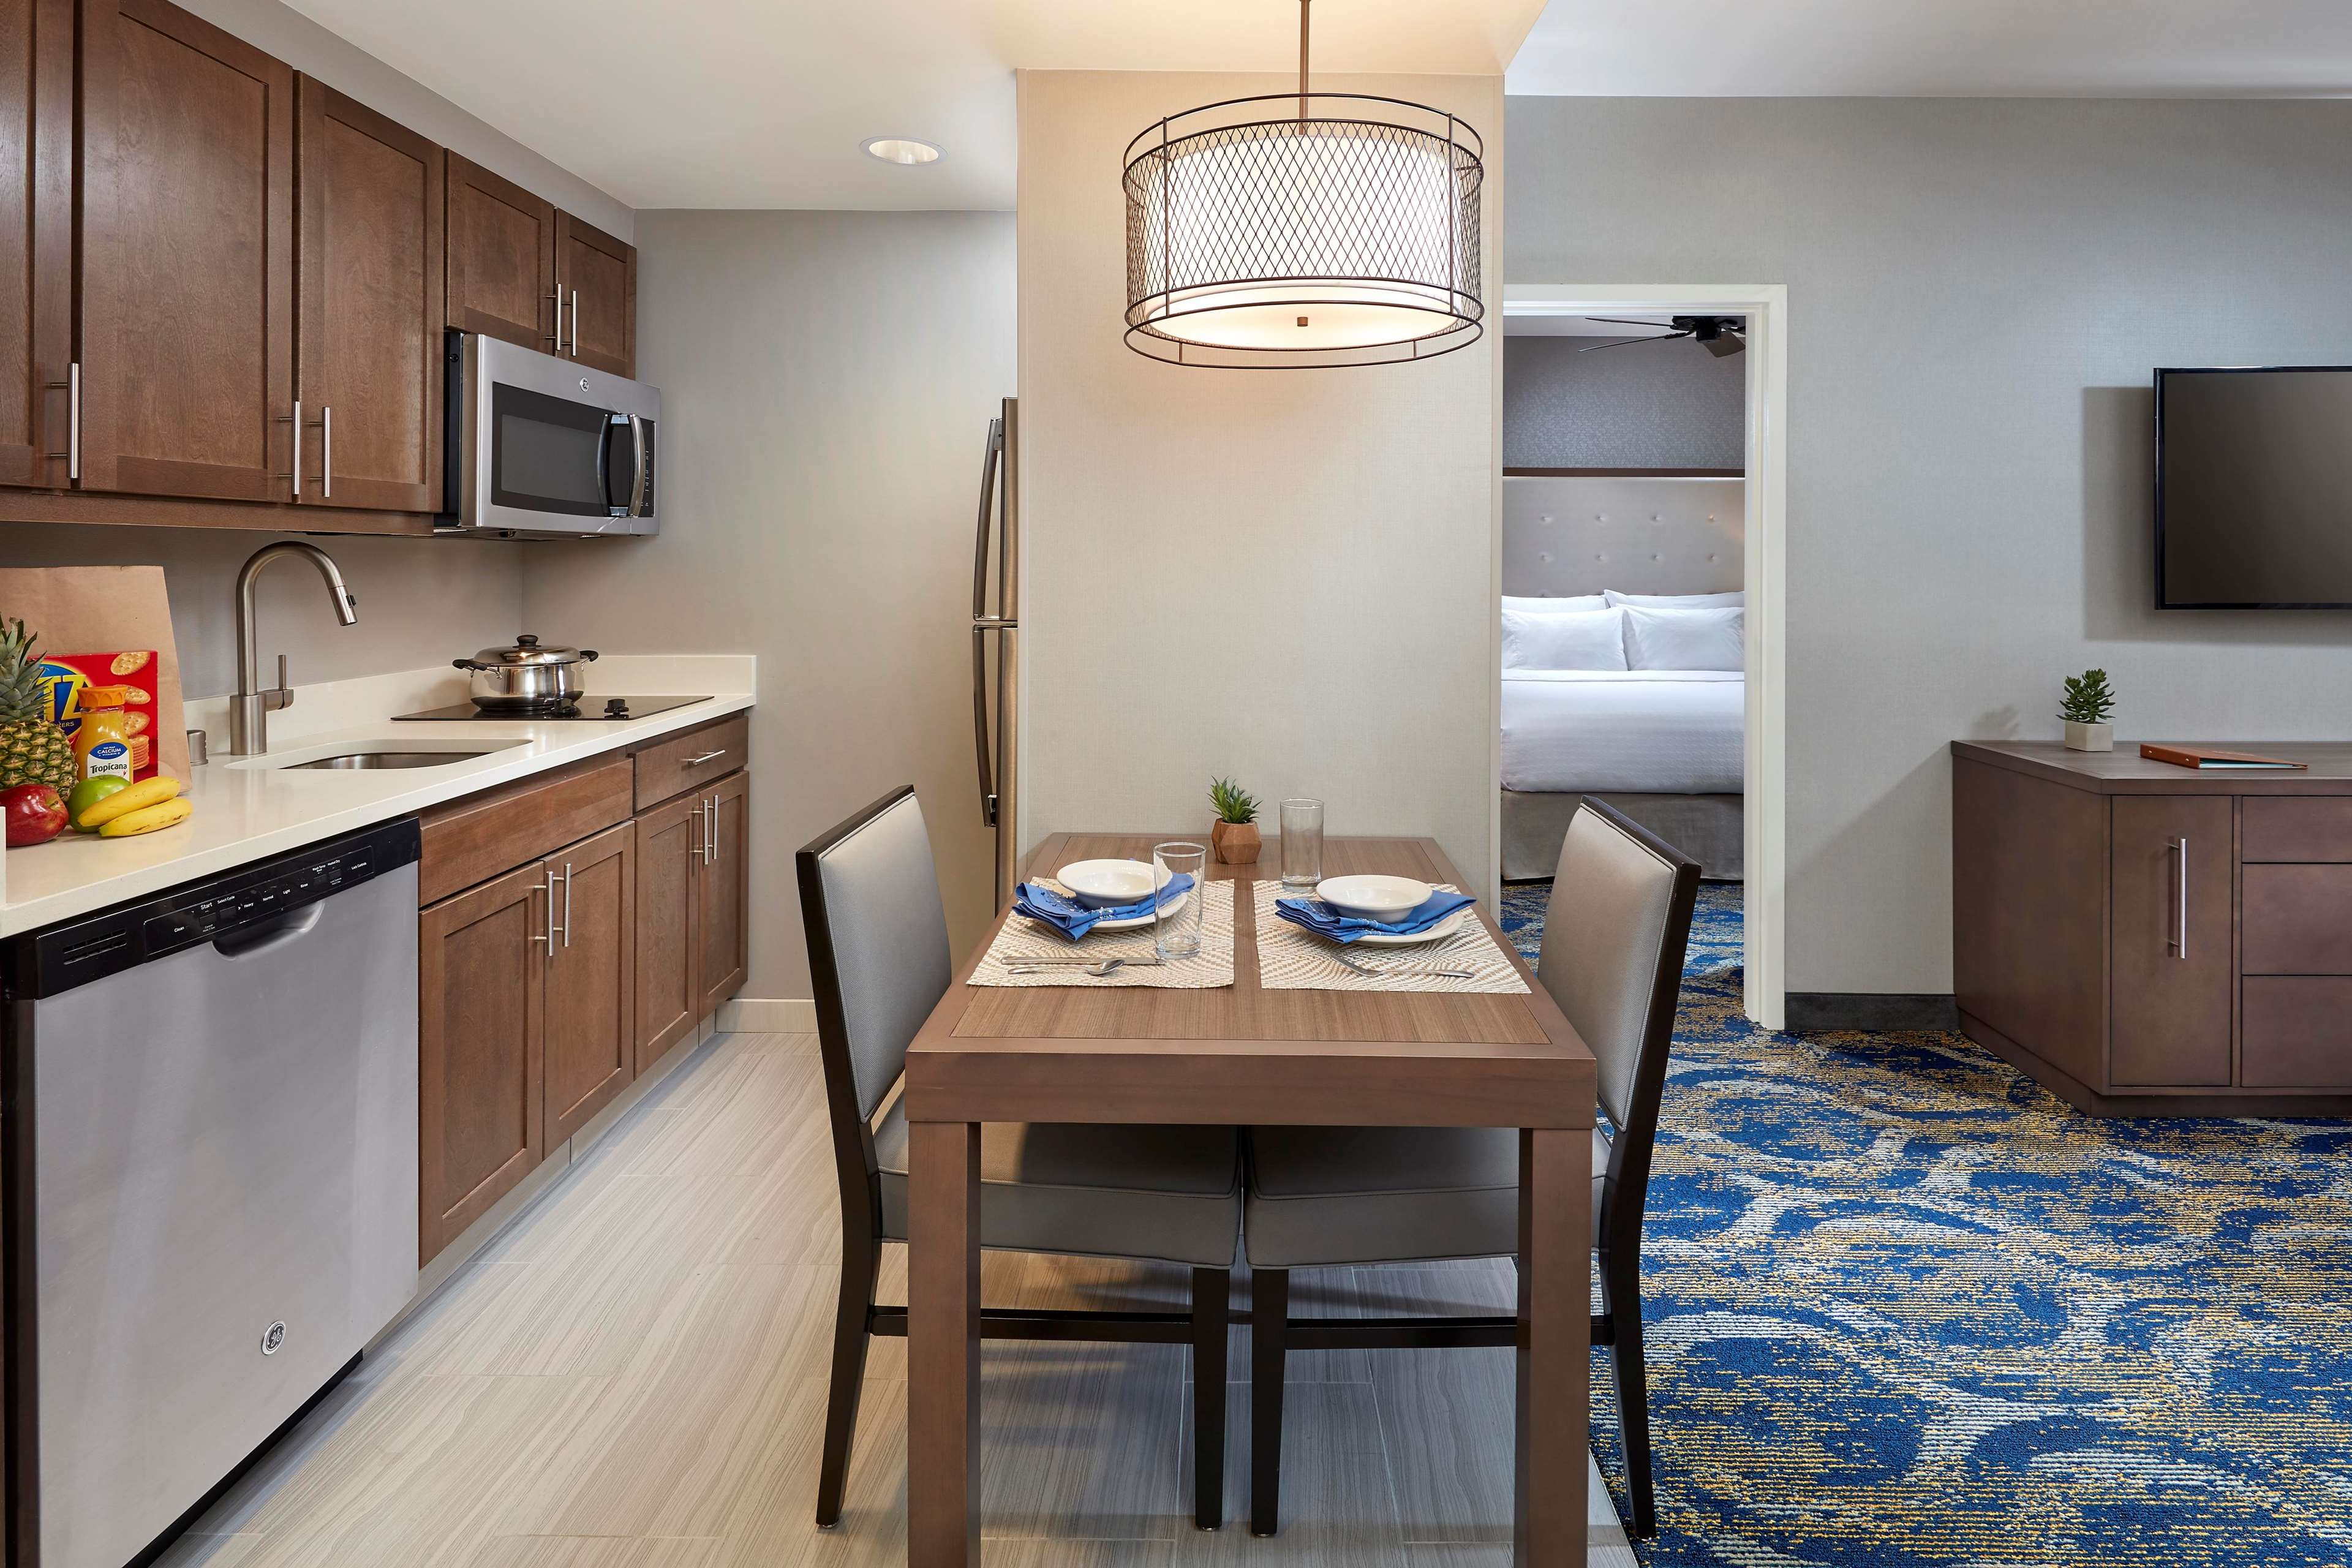 Homewood Suites by Hilton Los Angeles Redondo Beach image 18